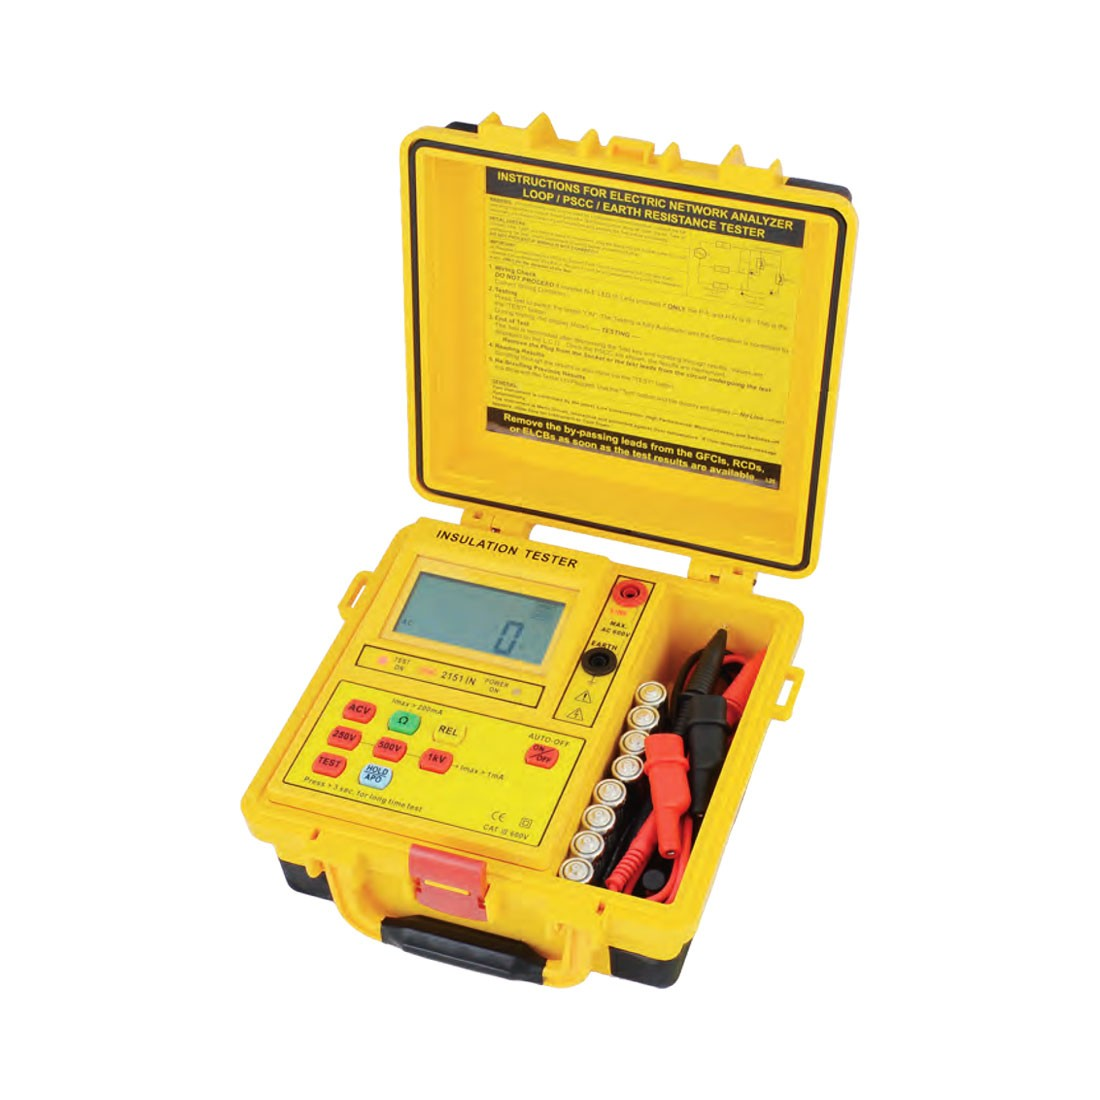 2151IN Digital (Up to 1kV) Insulation Tester